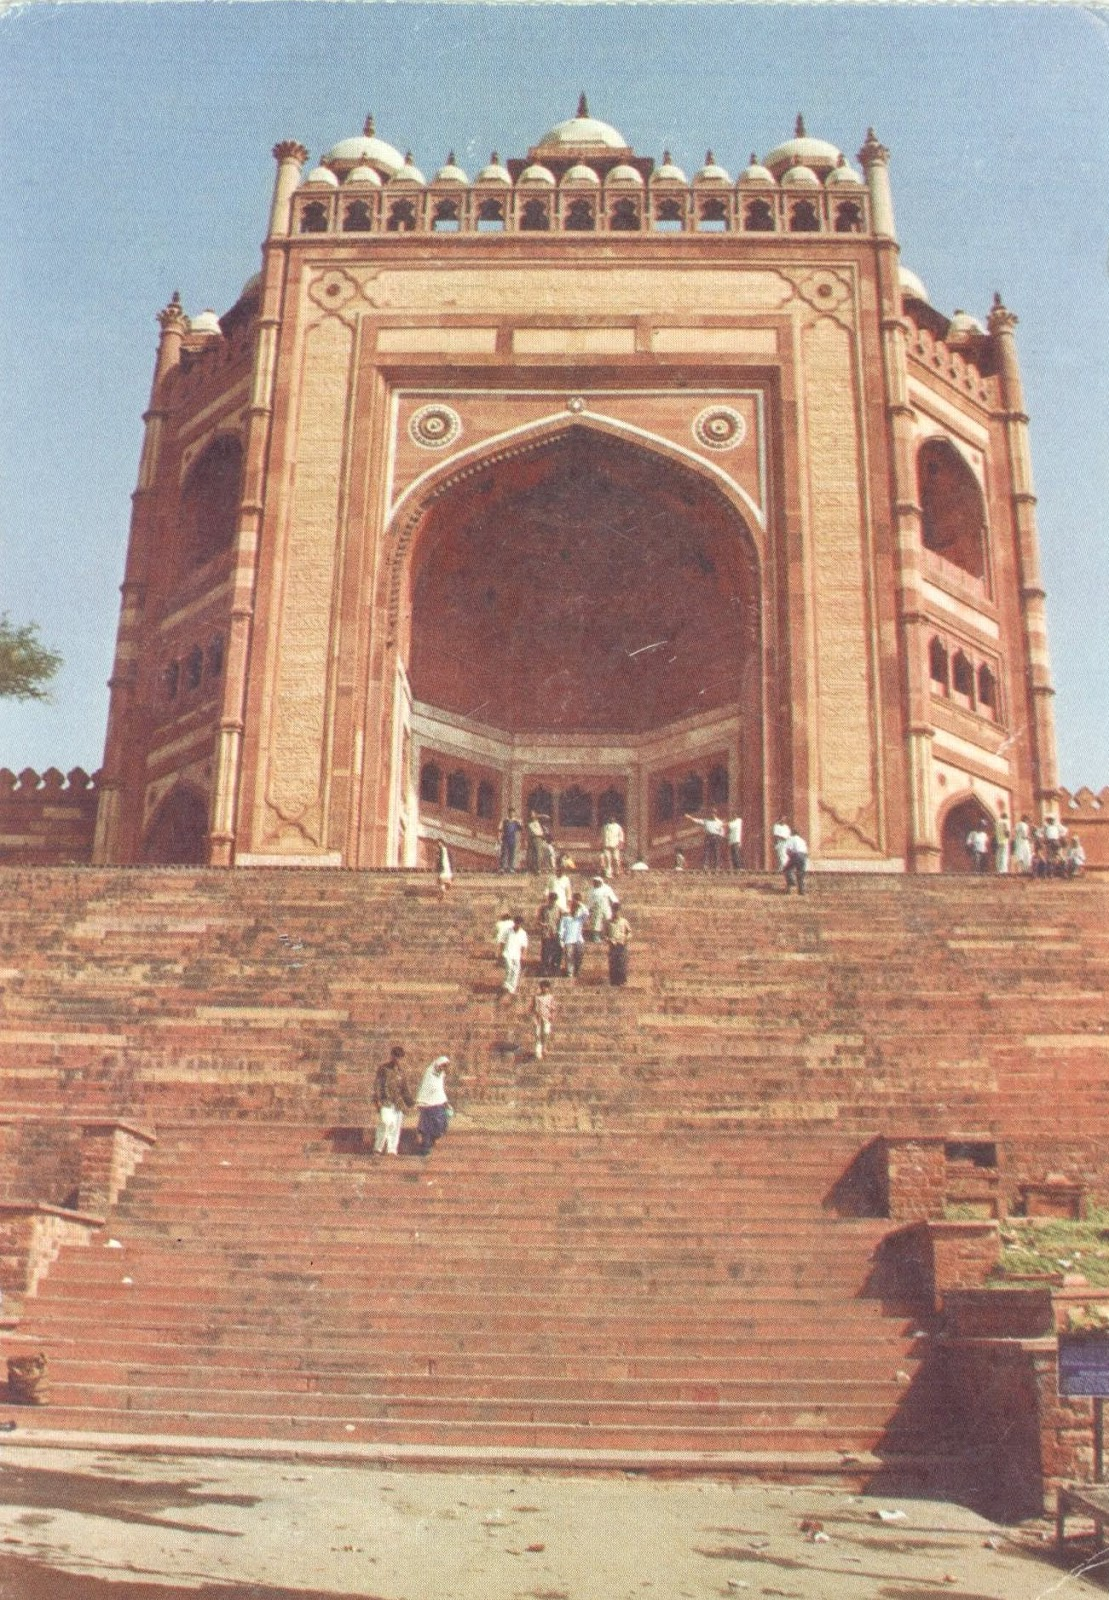 buland darwaza essay Buland darwaza in agra is famous for monuments activities a grand gateway located in fatehpur sikri near agra was built by.